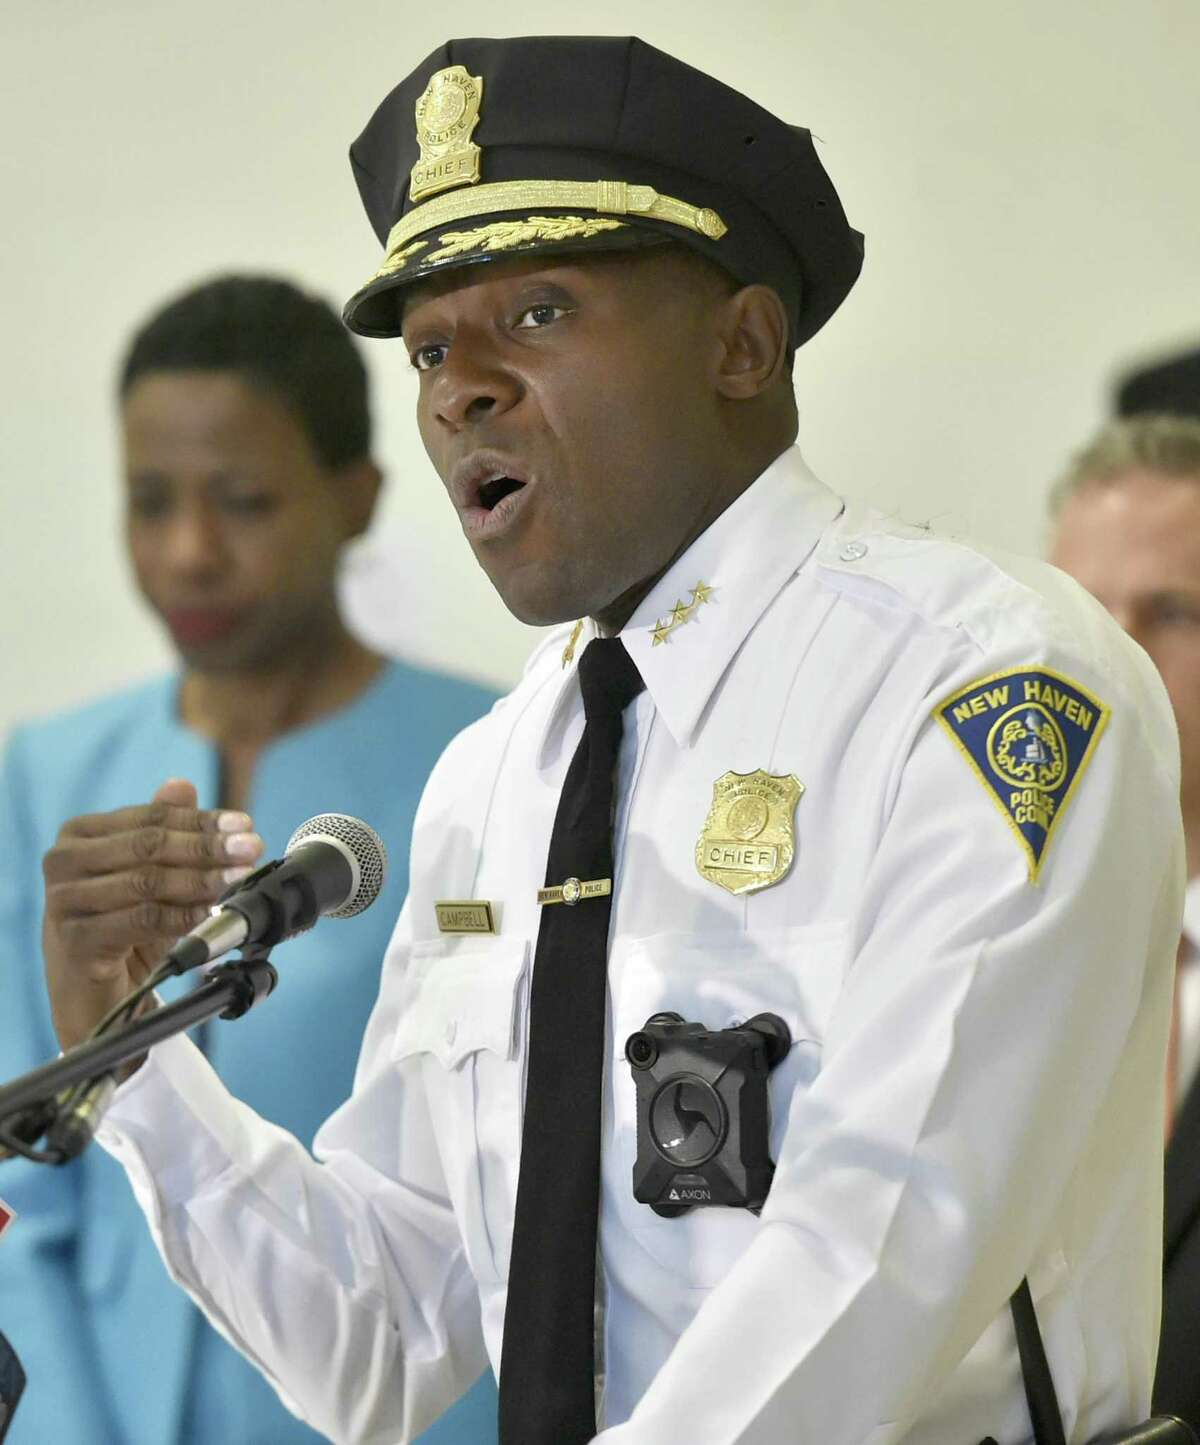 New Haven Police Chief Anthony Campbell